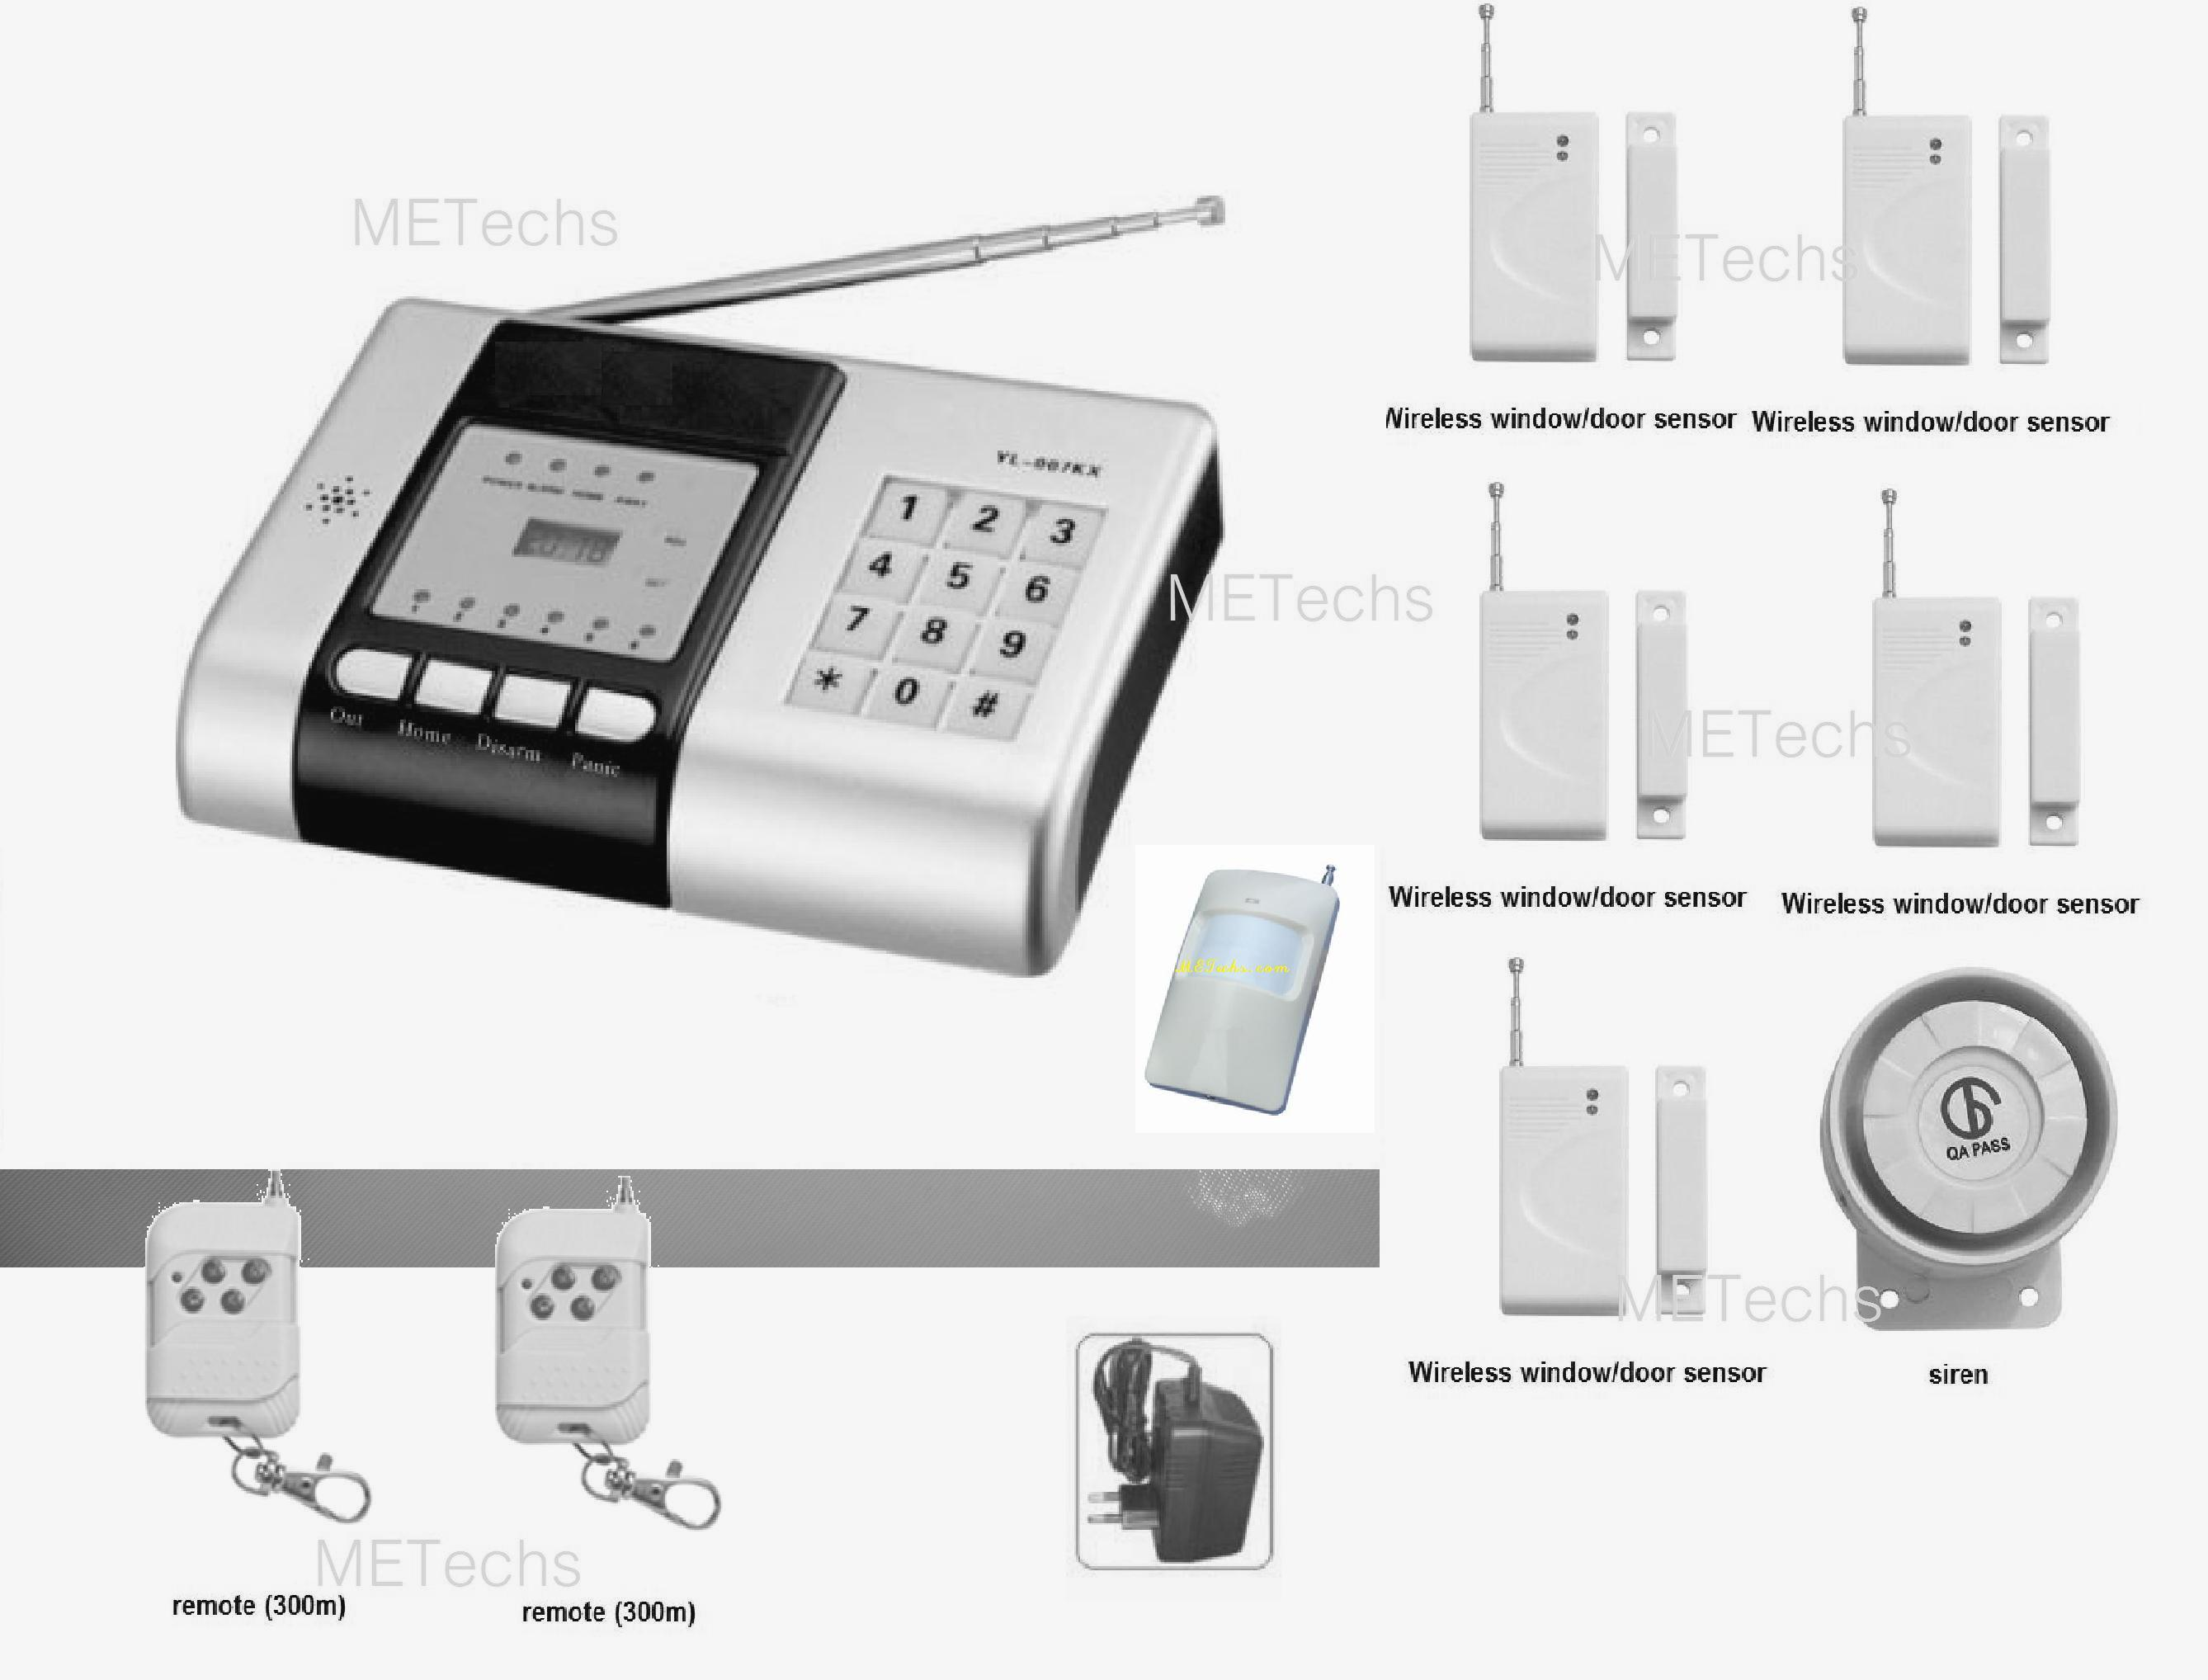 Python 5904p Responder Hd 2way Security System With Remote